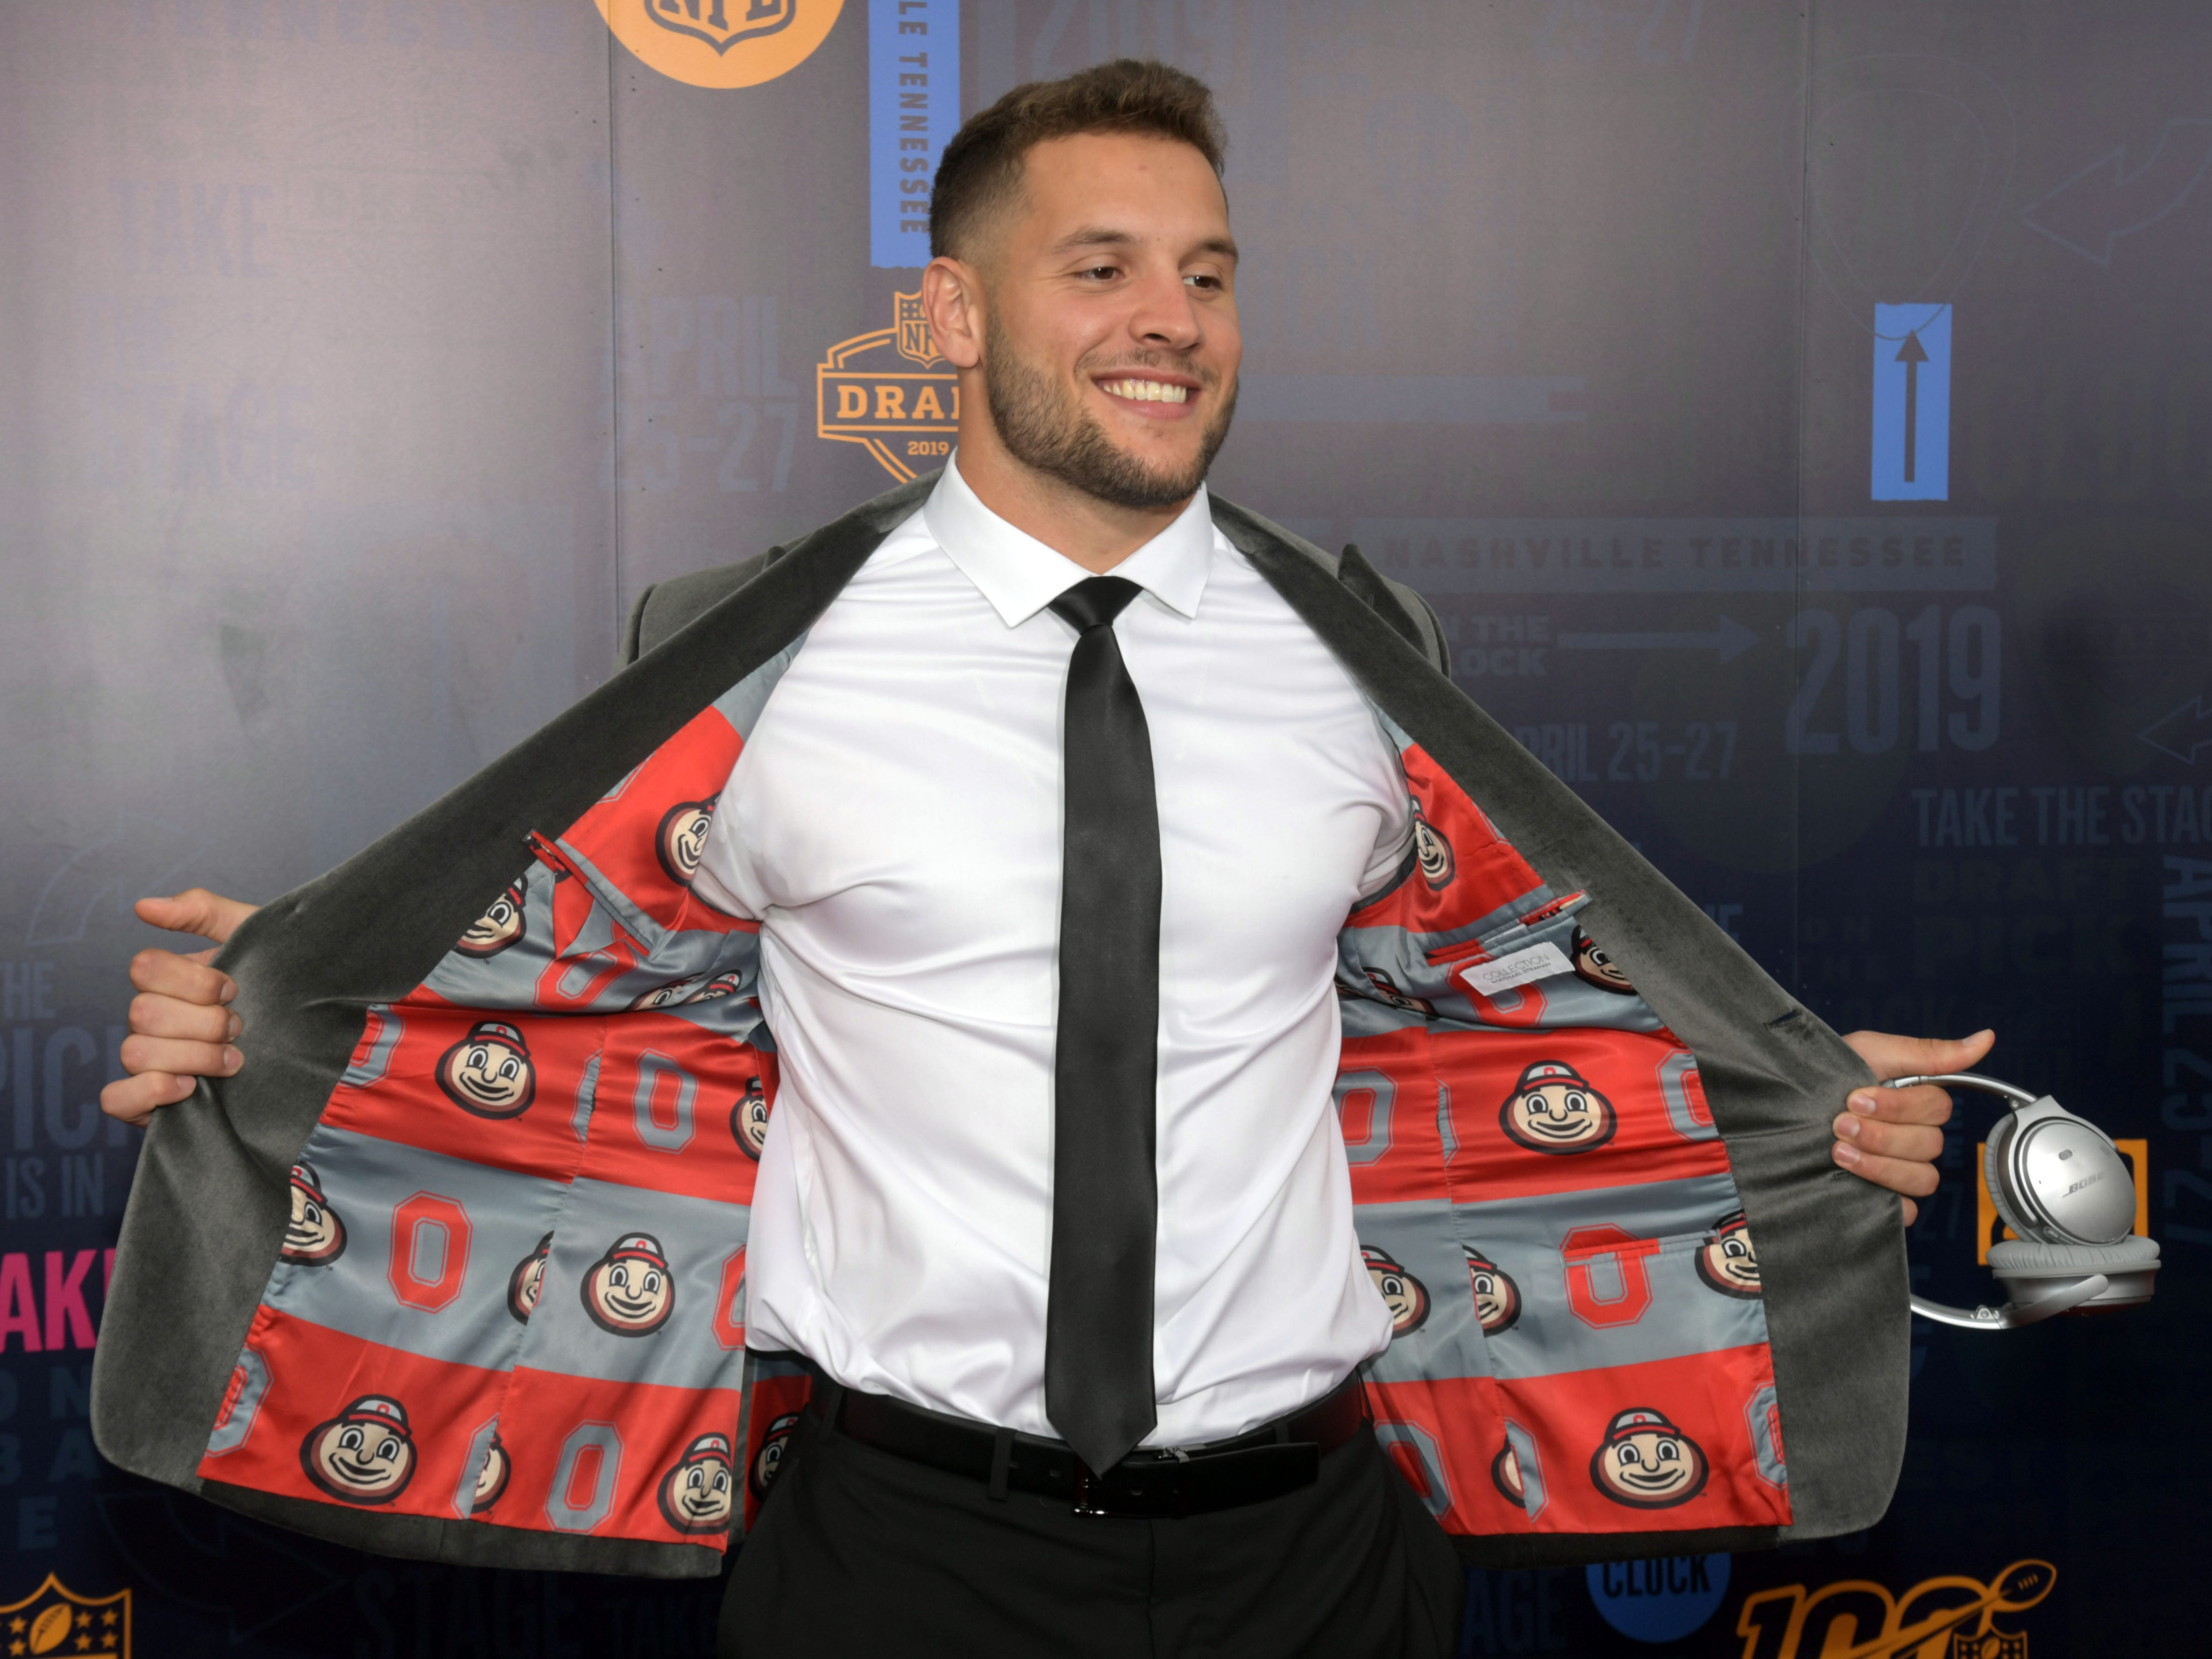 Nick Bosa (of Ohio State) on the red carpet prior to the first round of the 2019 NFL draft.